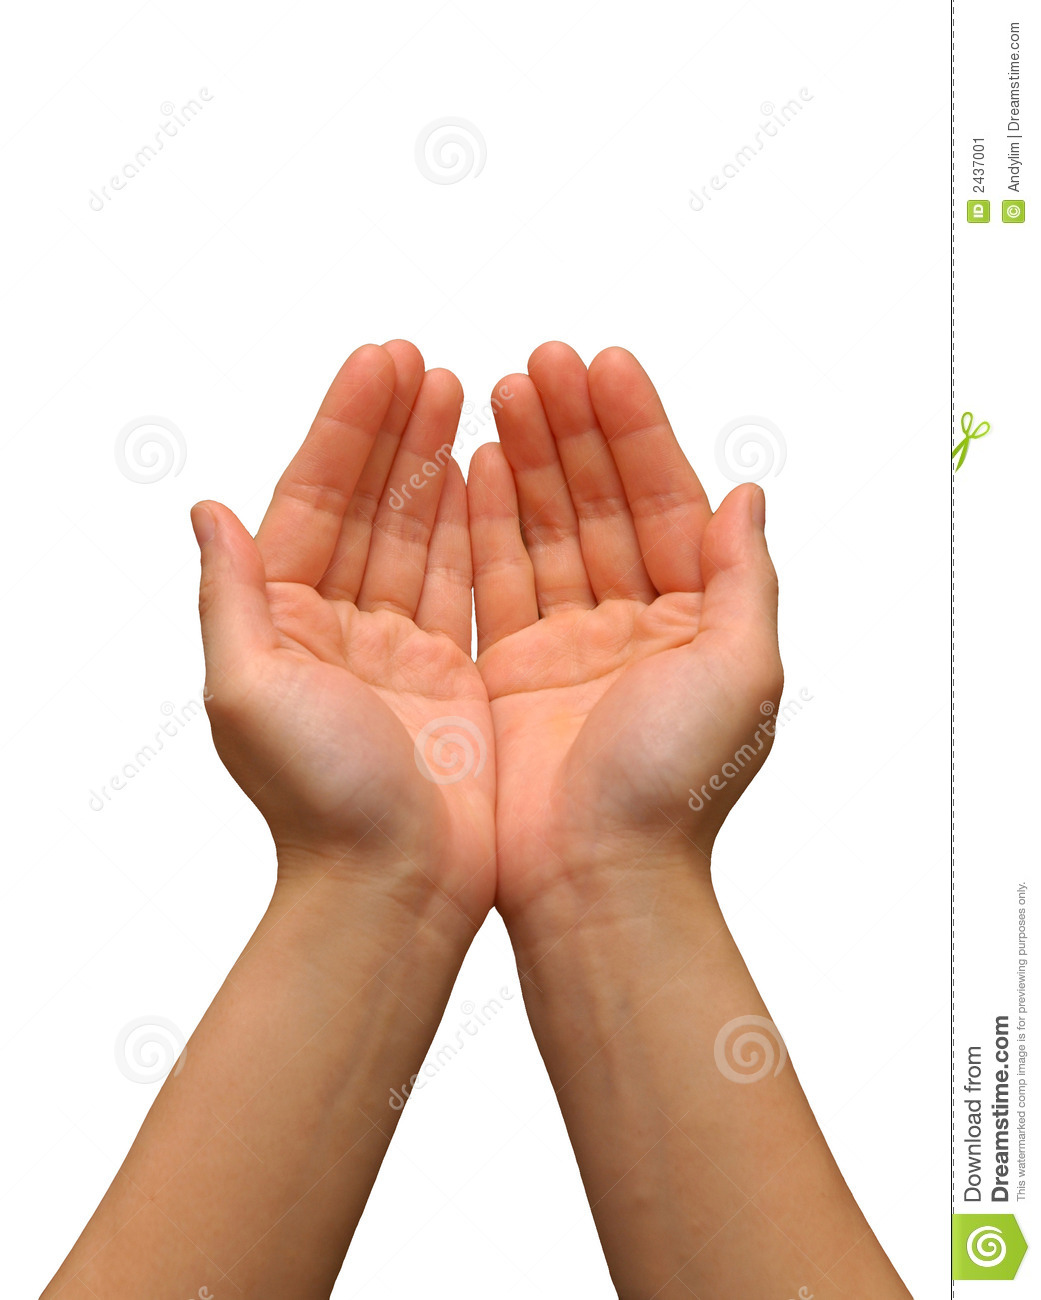 cupping hand gesture stock